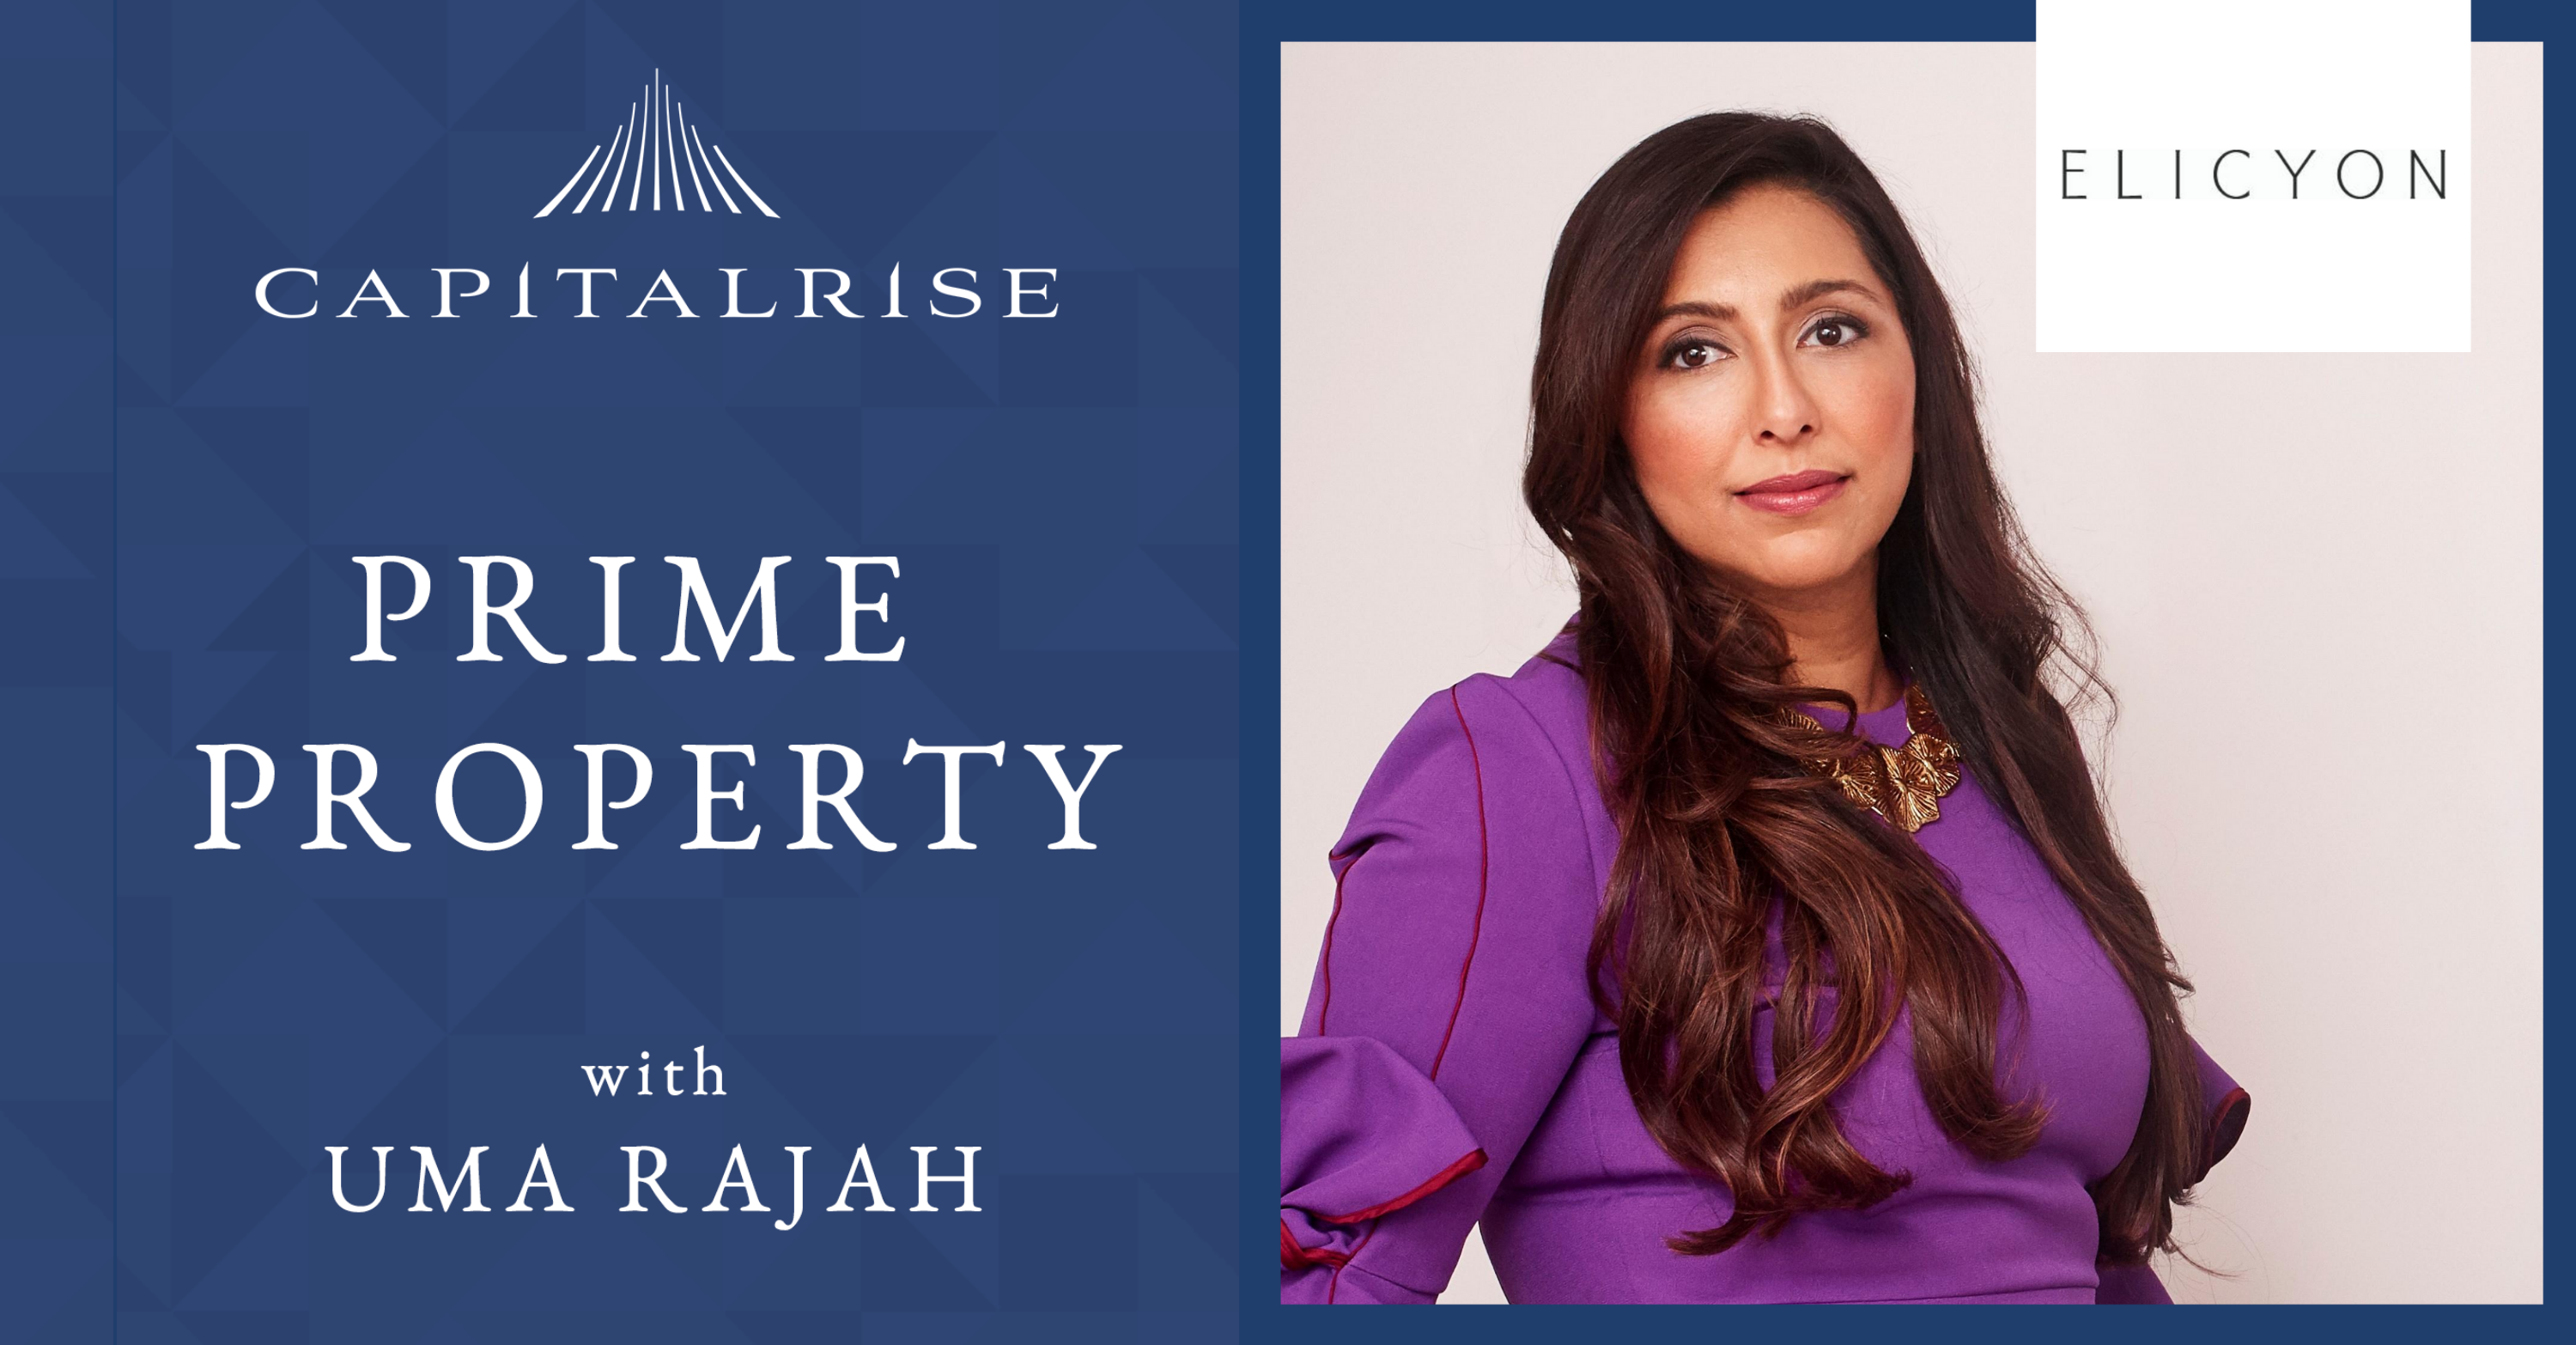 Prime property with Uma Rajah – Episode Three